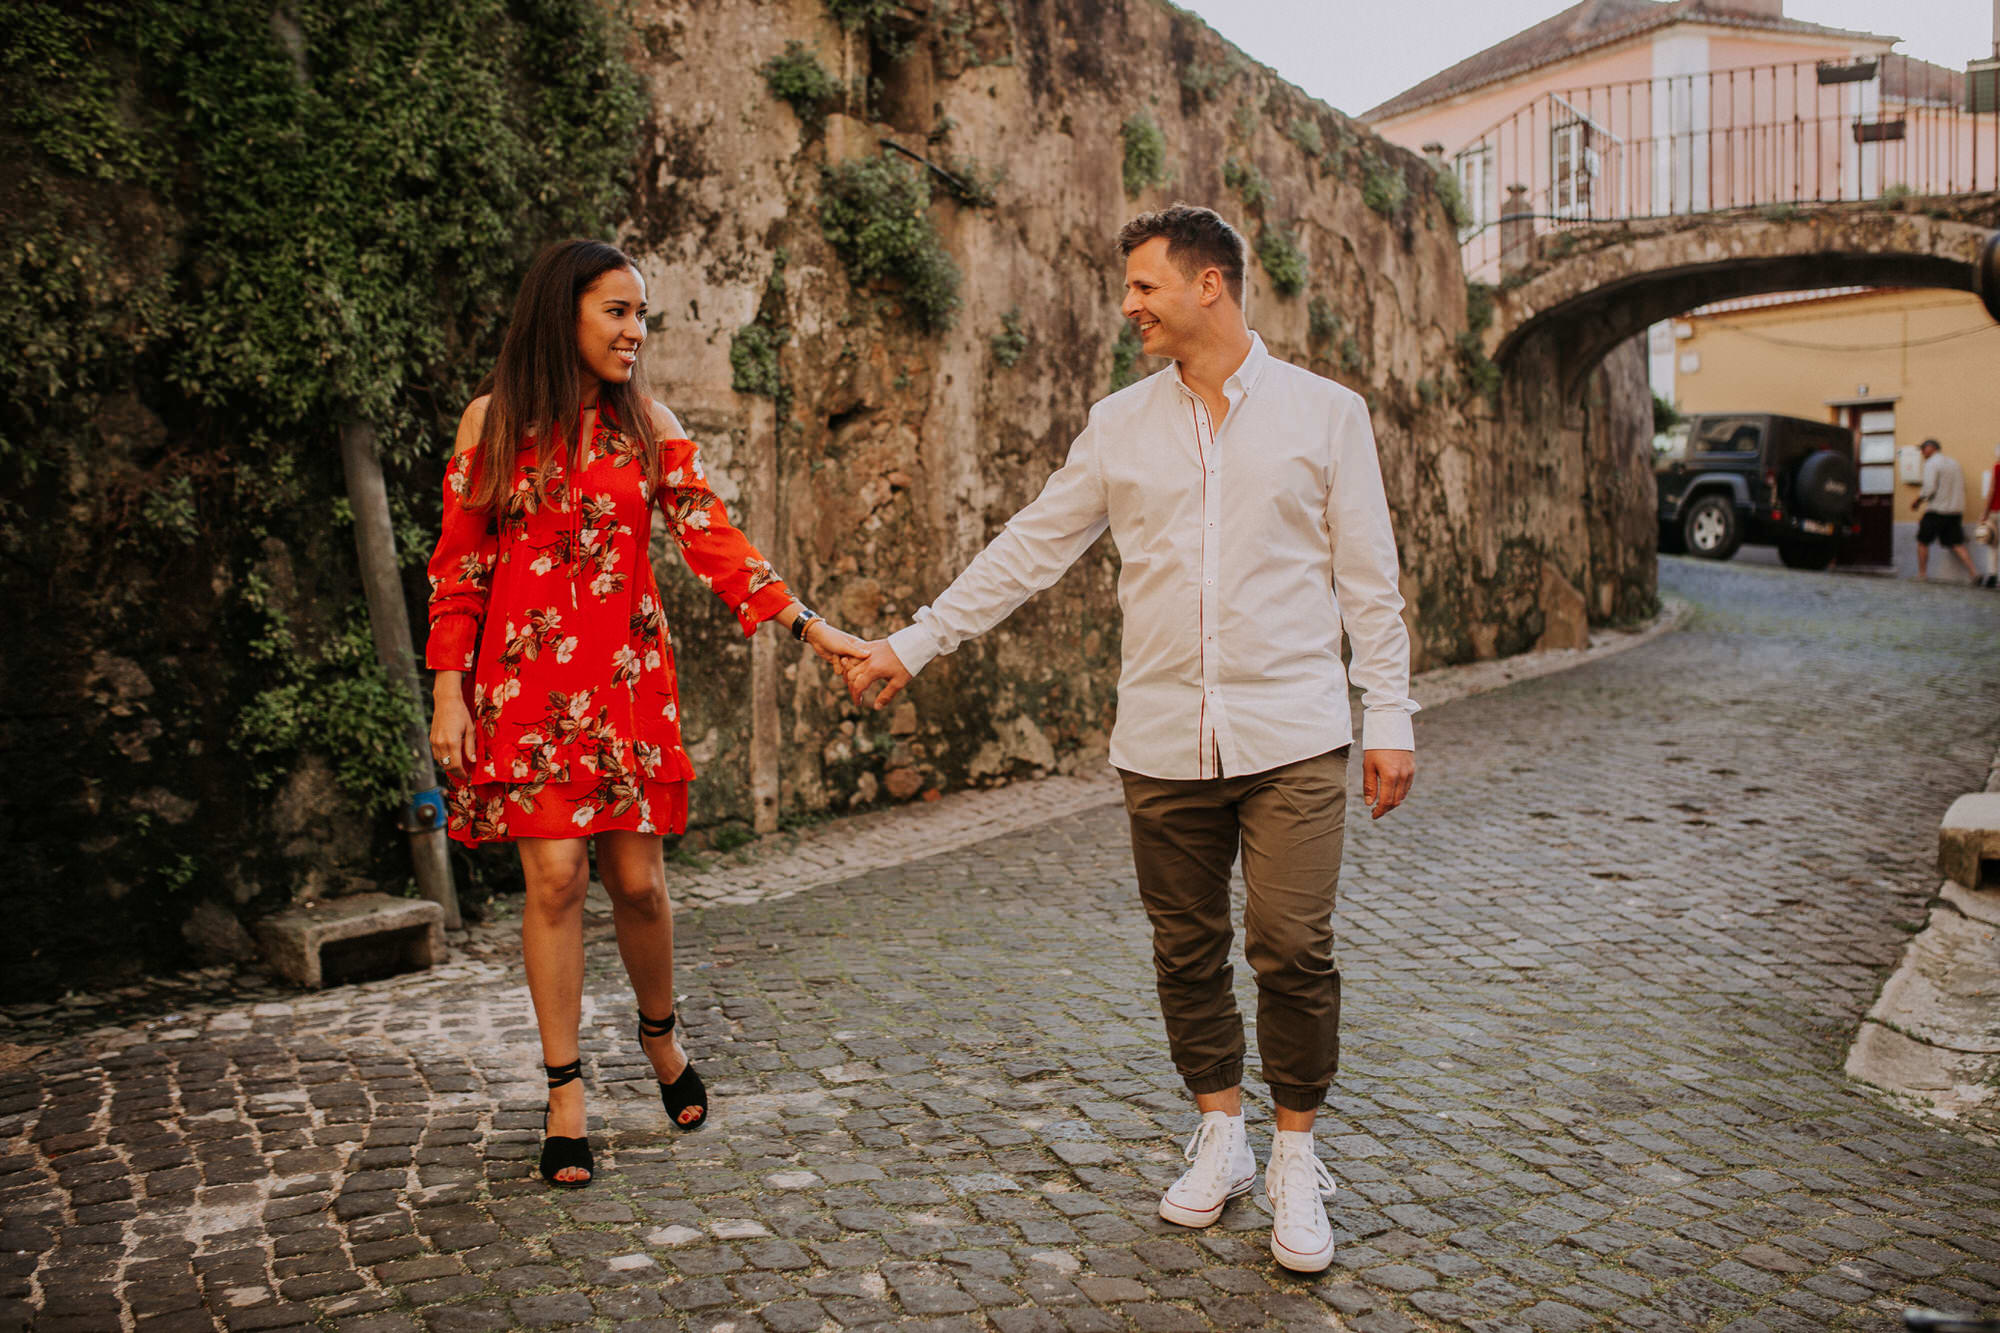 10-sessao-noivado-engagement-love-session-Sintra-lisboa-town-wedding-photography-photographer-natural-best-venue-planner-destination-filipe-santiago-fotografia-lifestyle-documentary